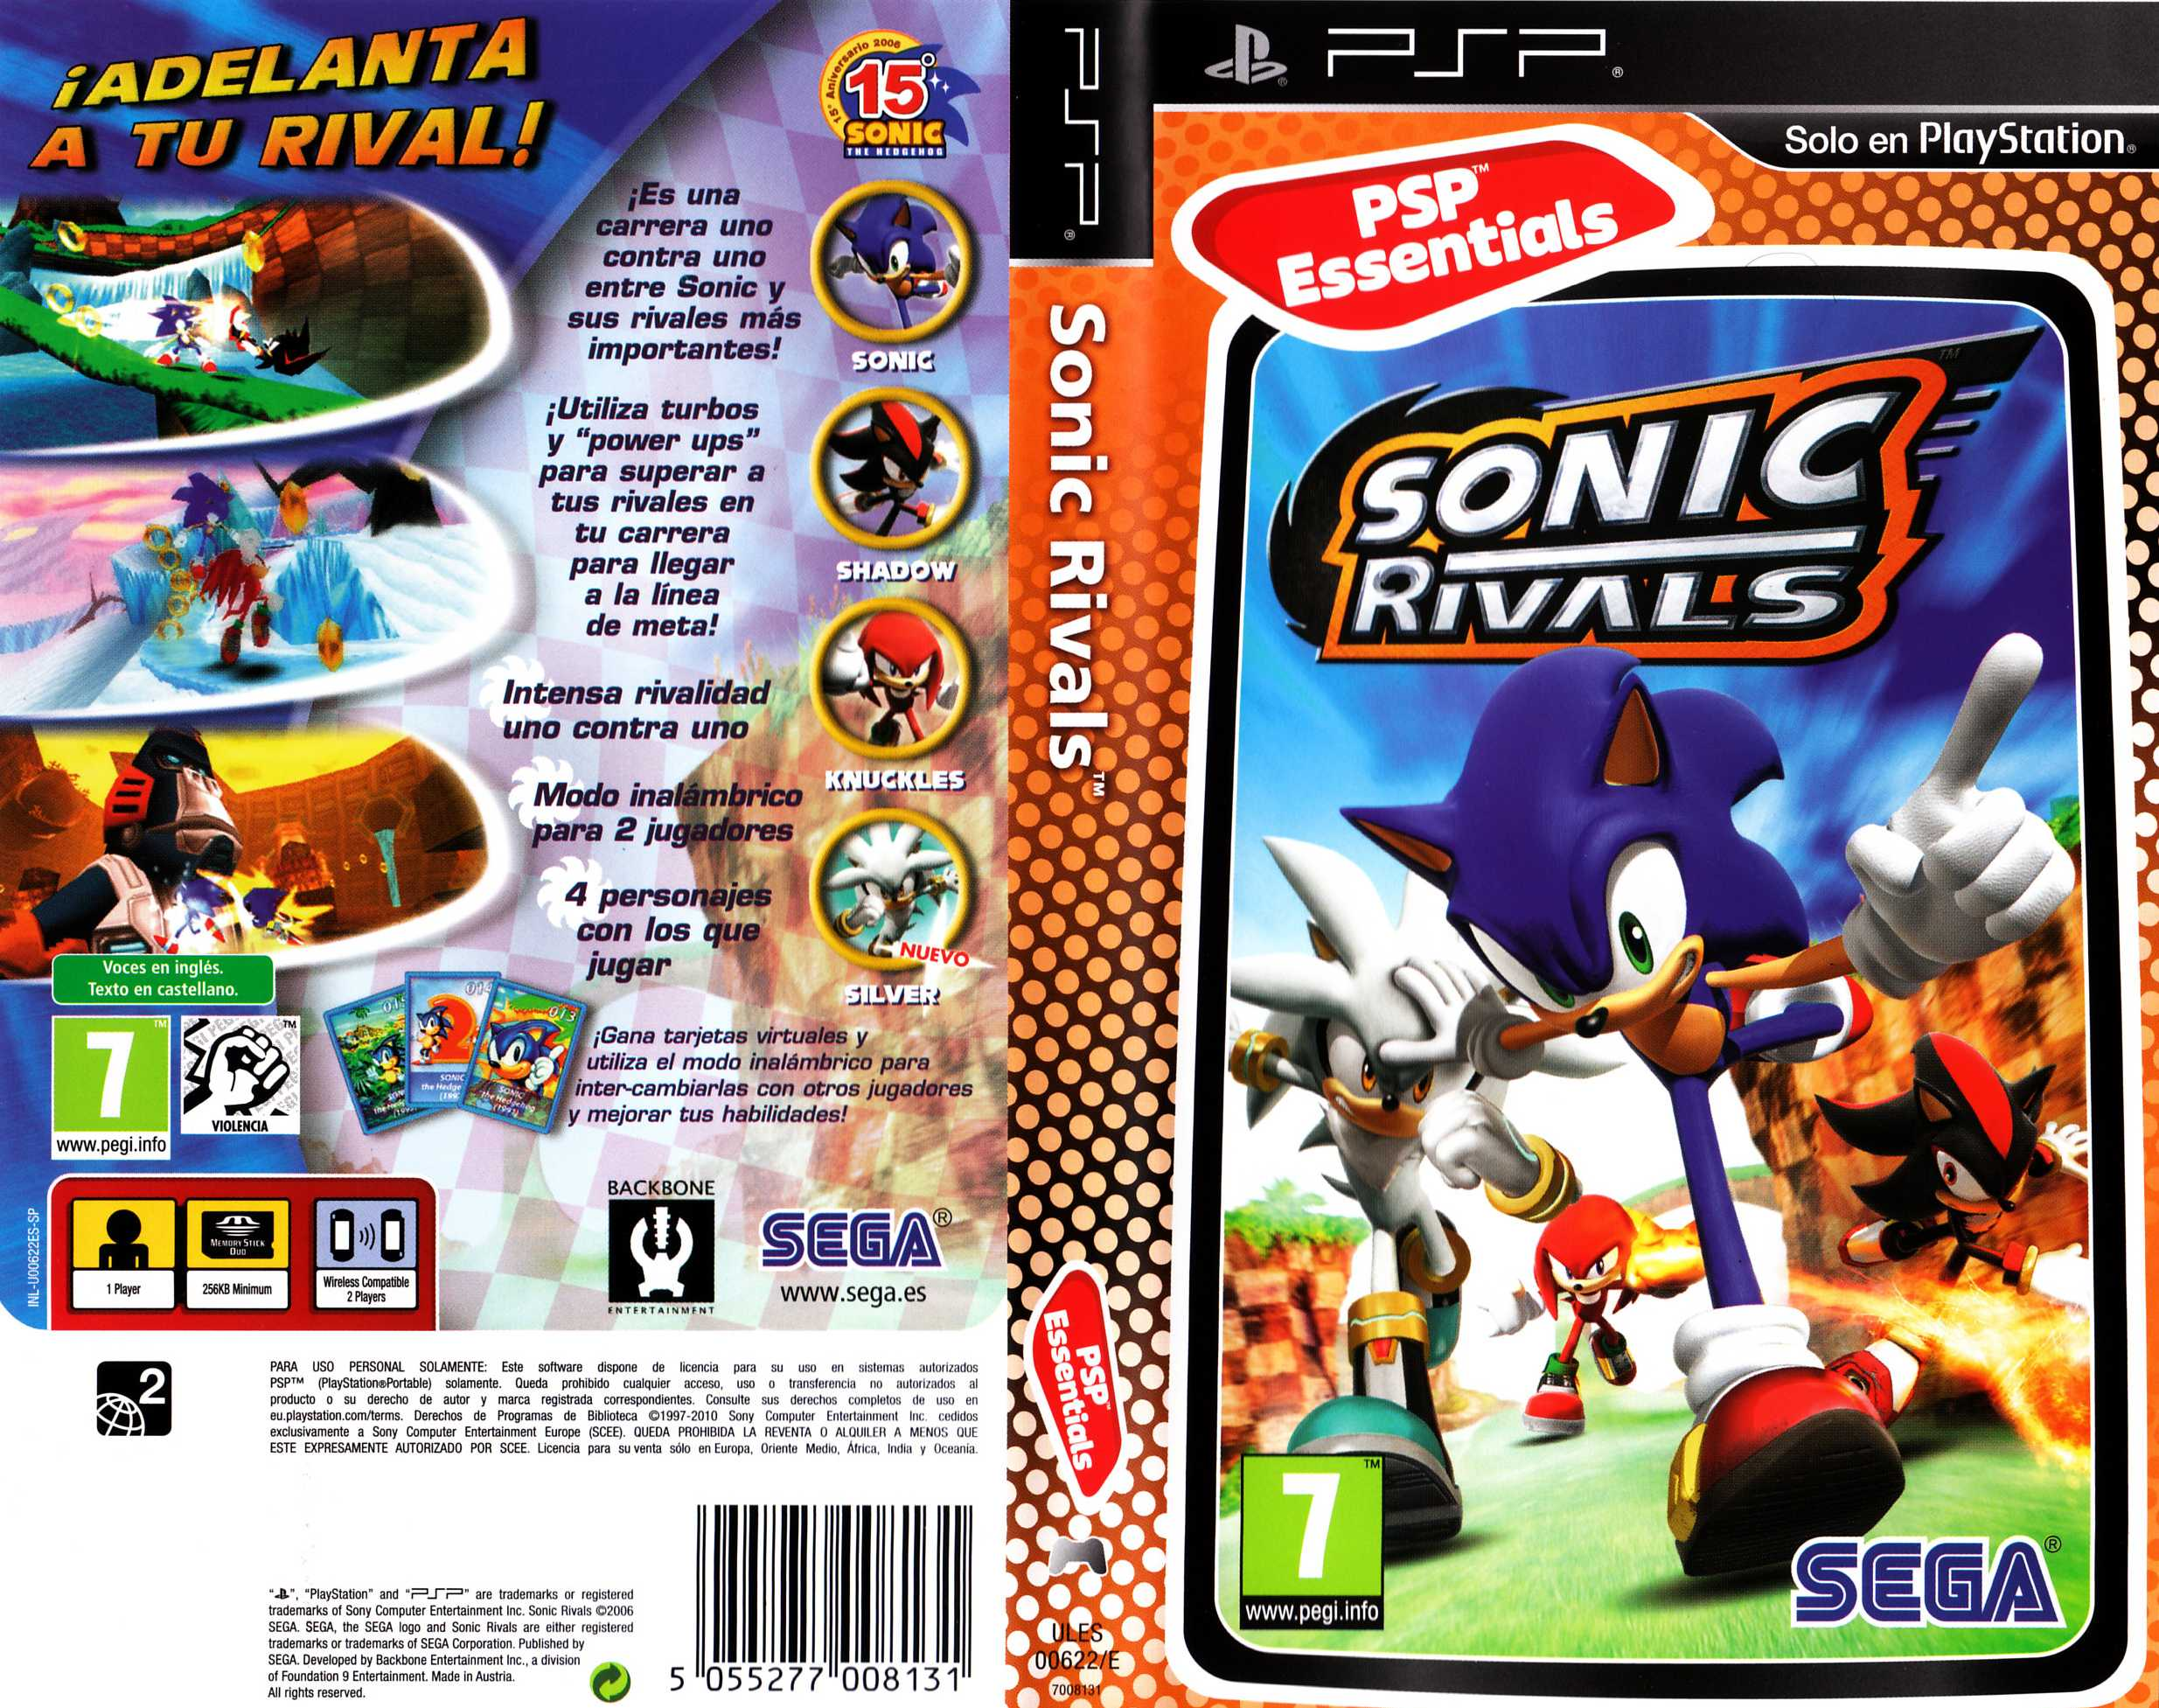 Sonic rivals 2 cso download